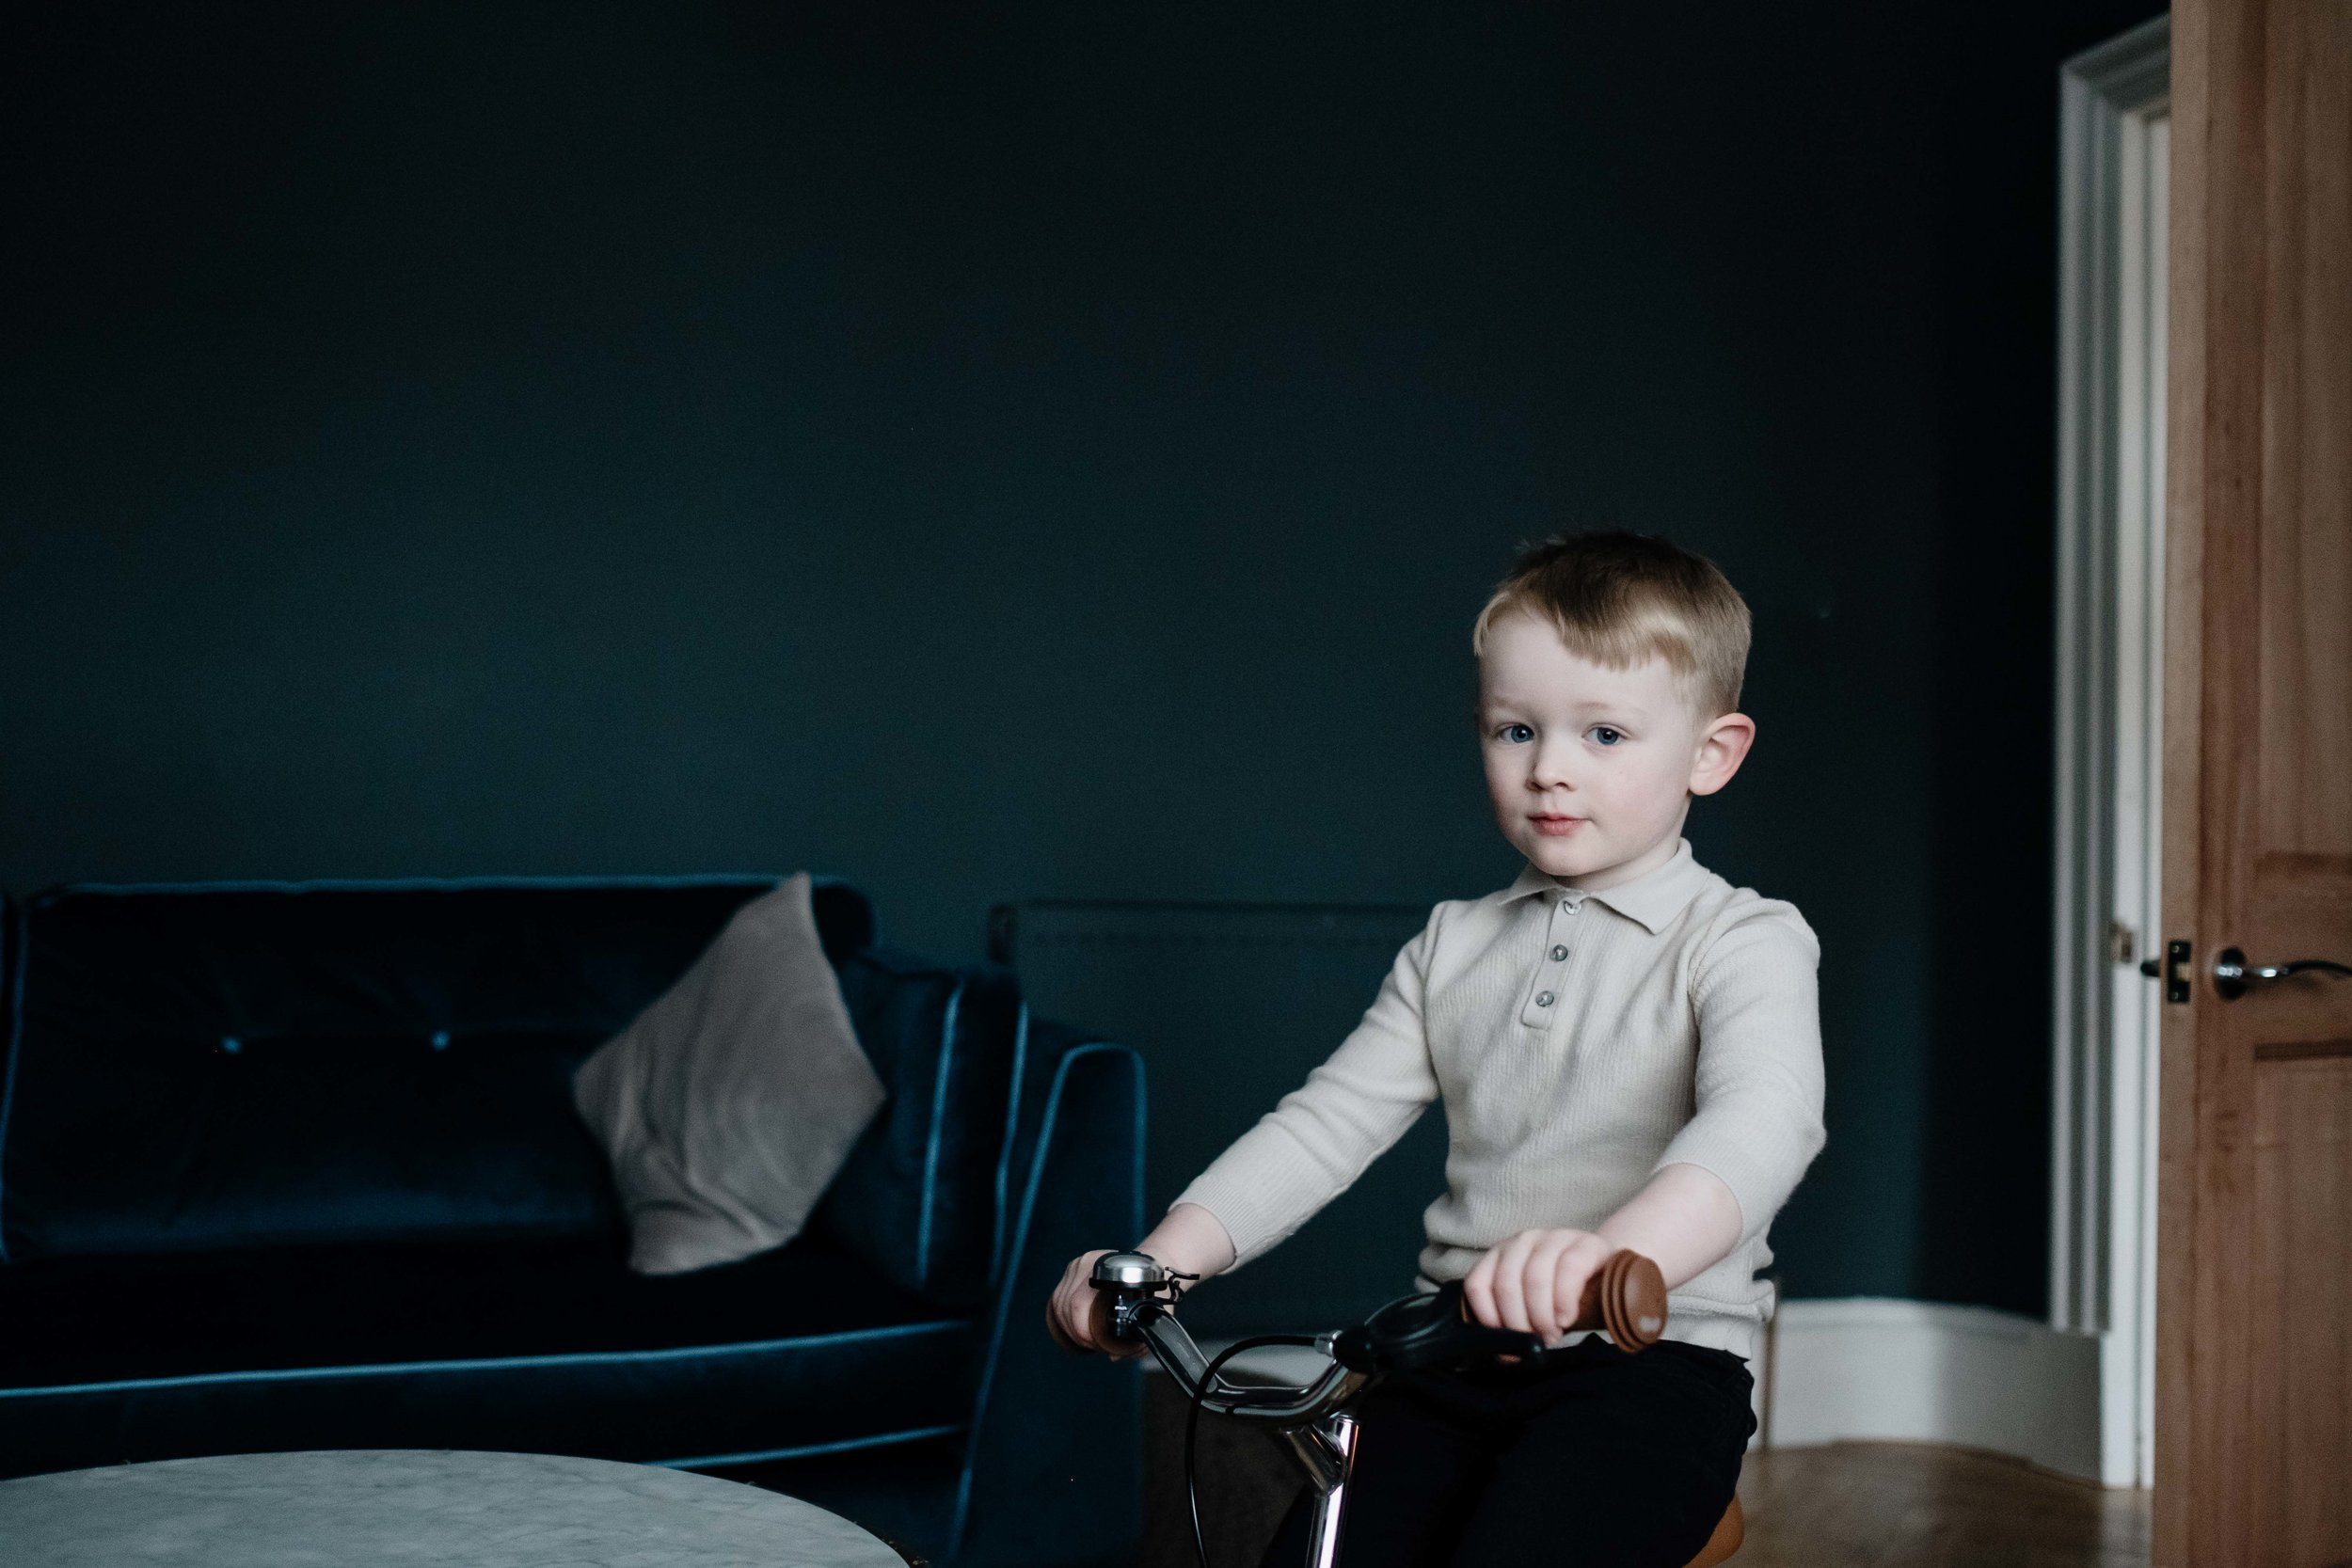 a young boy is sitting on his bike in the living room of his family home